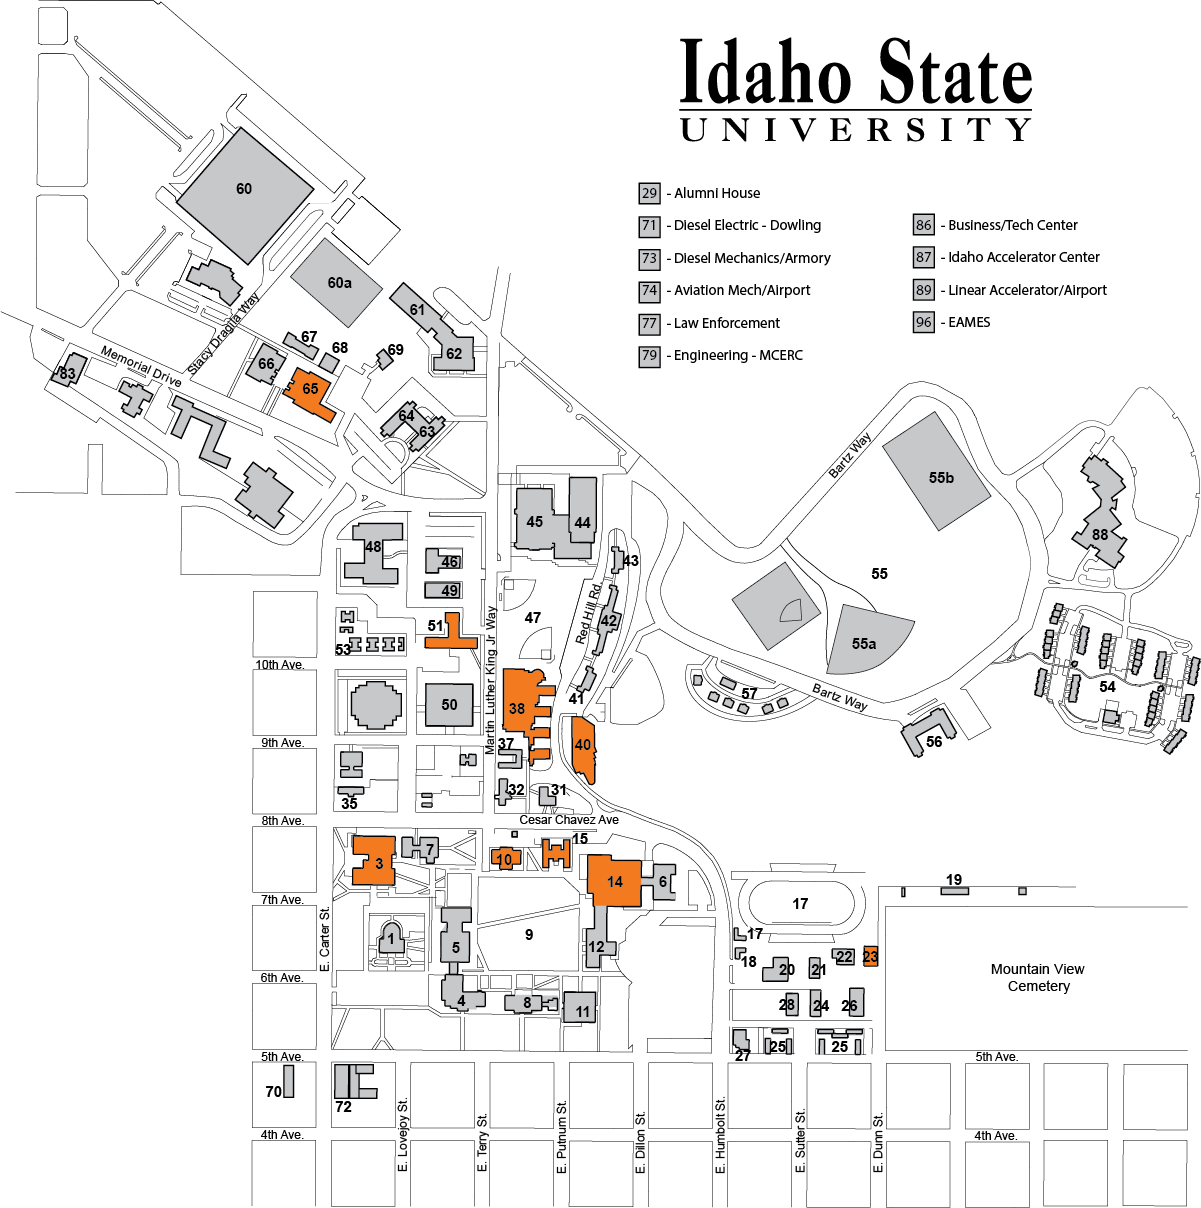 idaho state university campus map Inclusive Restrooms Idaho State University idaho state university campus map